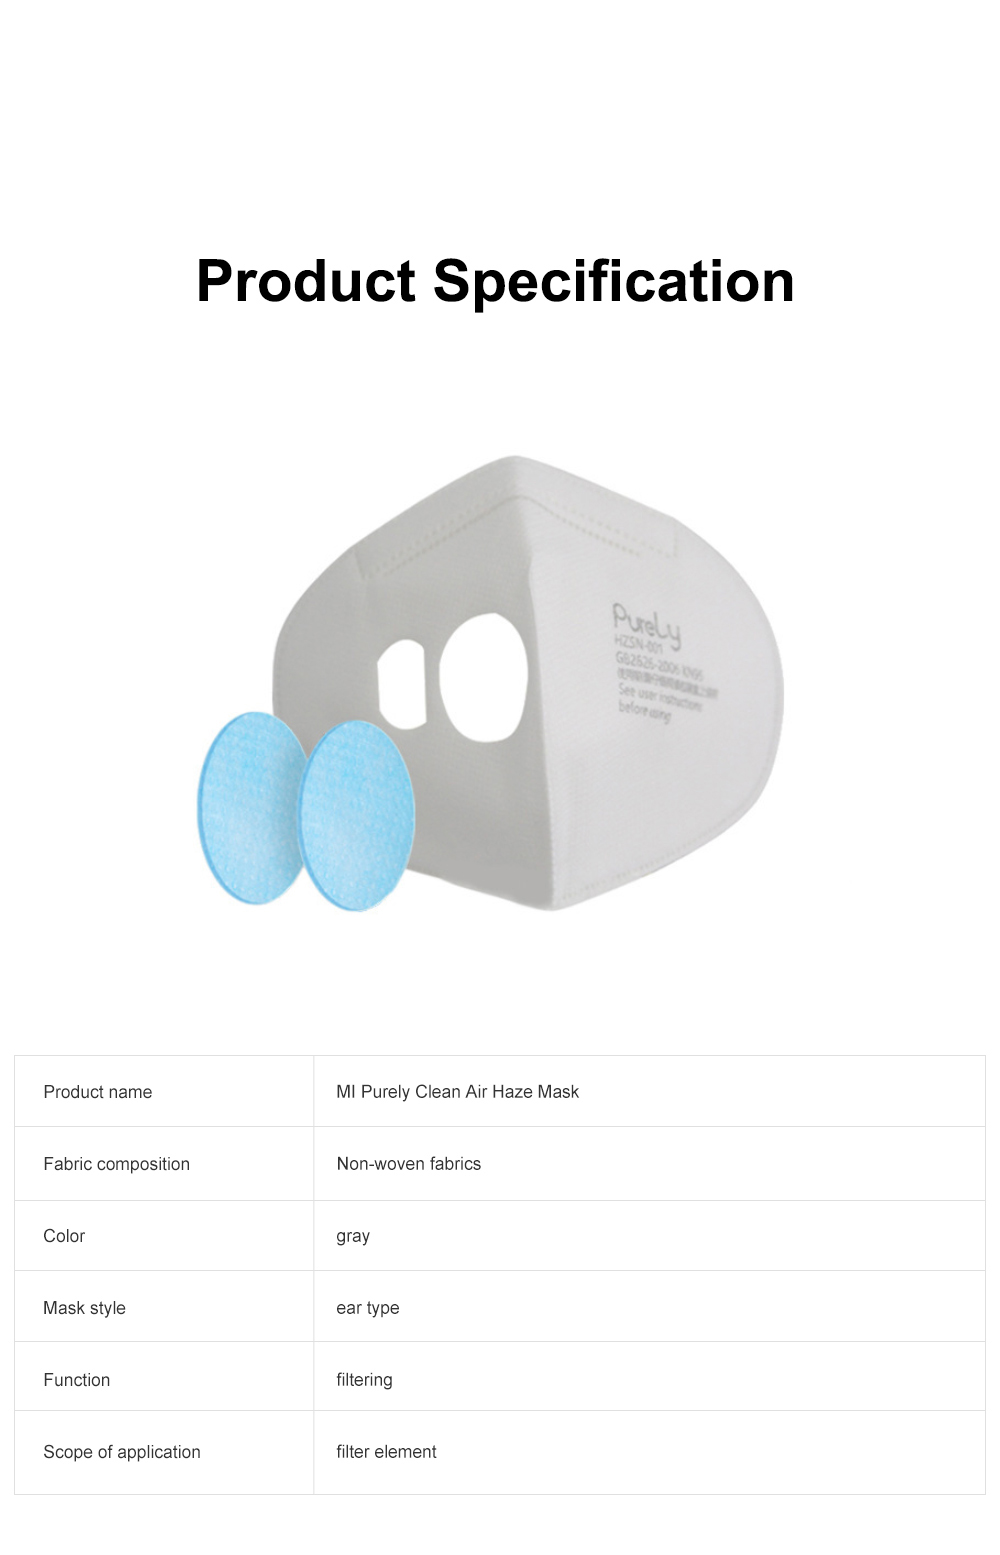 MI Purely Clean Air Haze Mask Anti-smog Anti Haze PM2.5 Dust Earhook Mask With Filter 2019 NEW 10